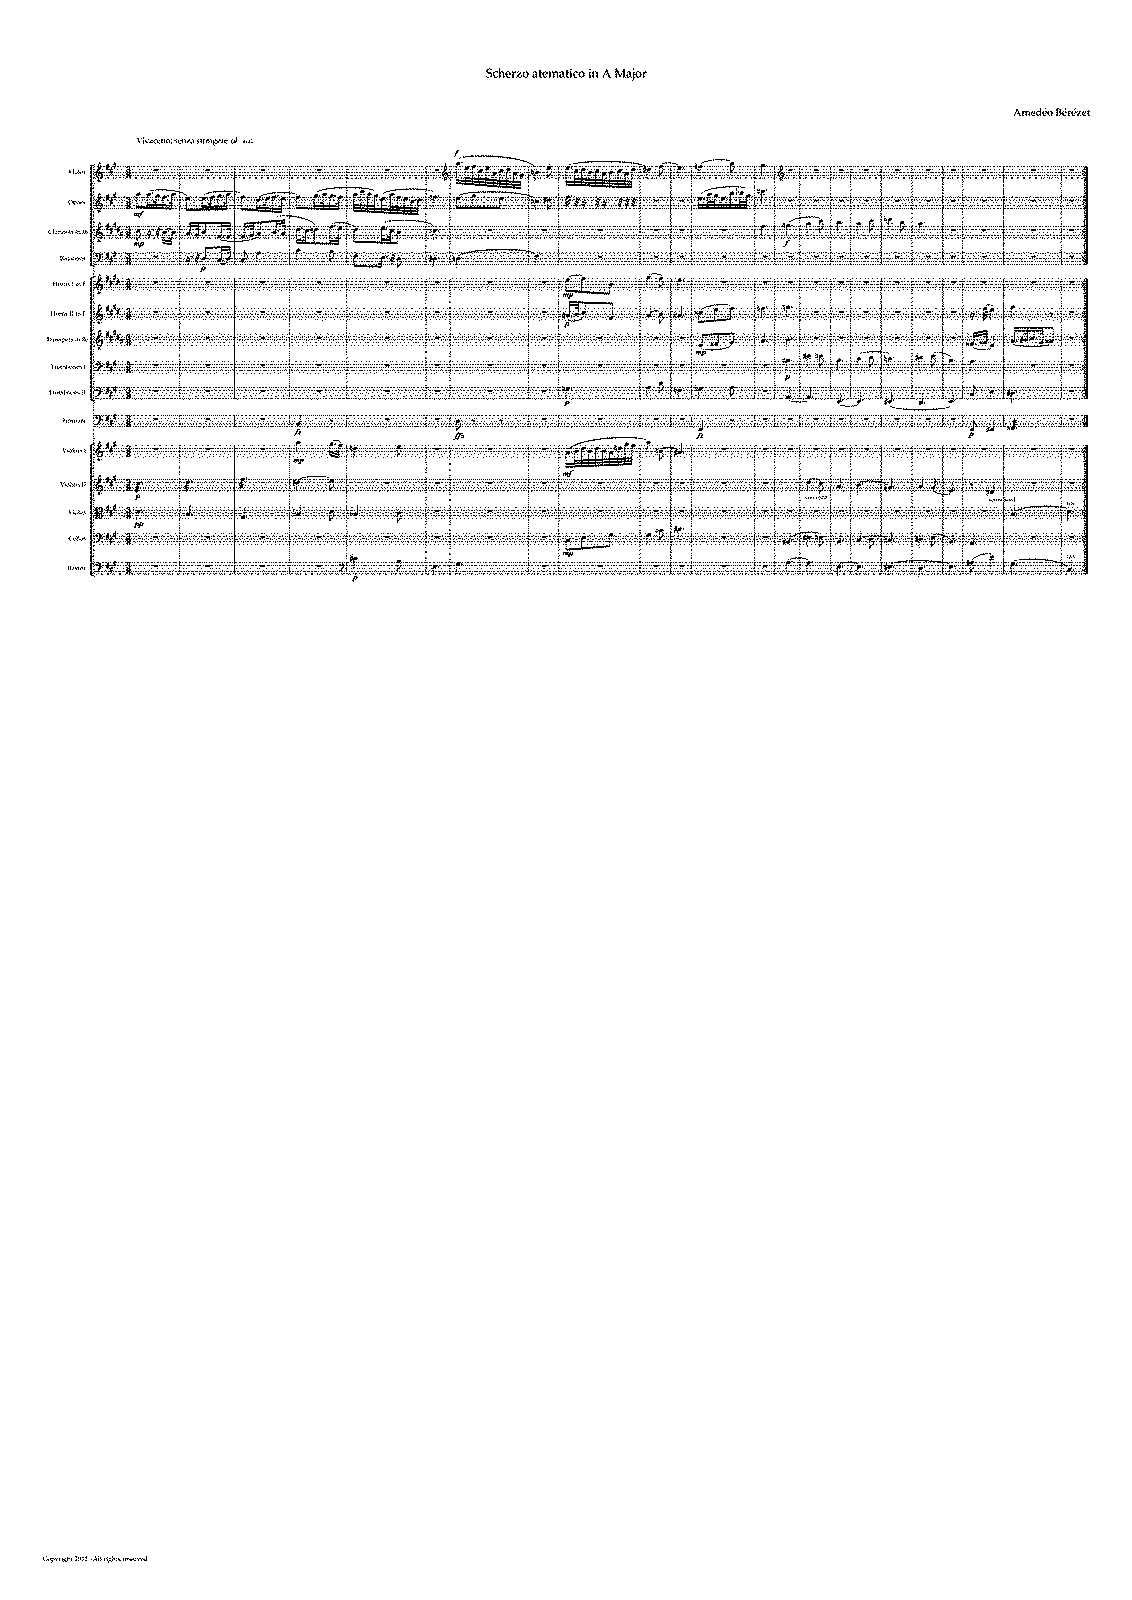 PMLP409331-Scherzo atematico in A Major by Amedéo Bérézet.pdf